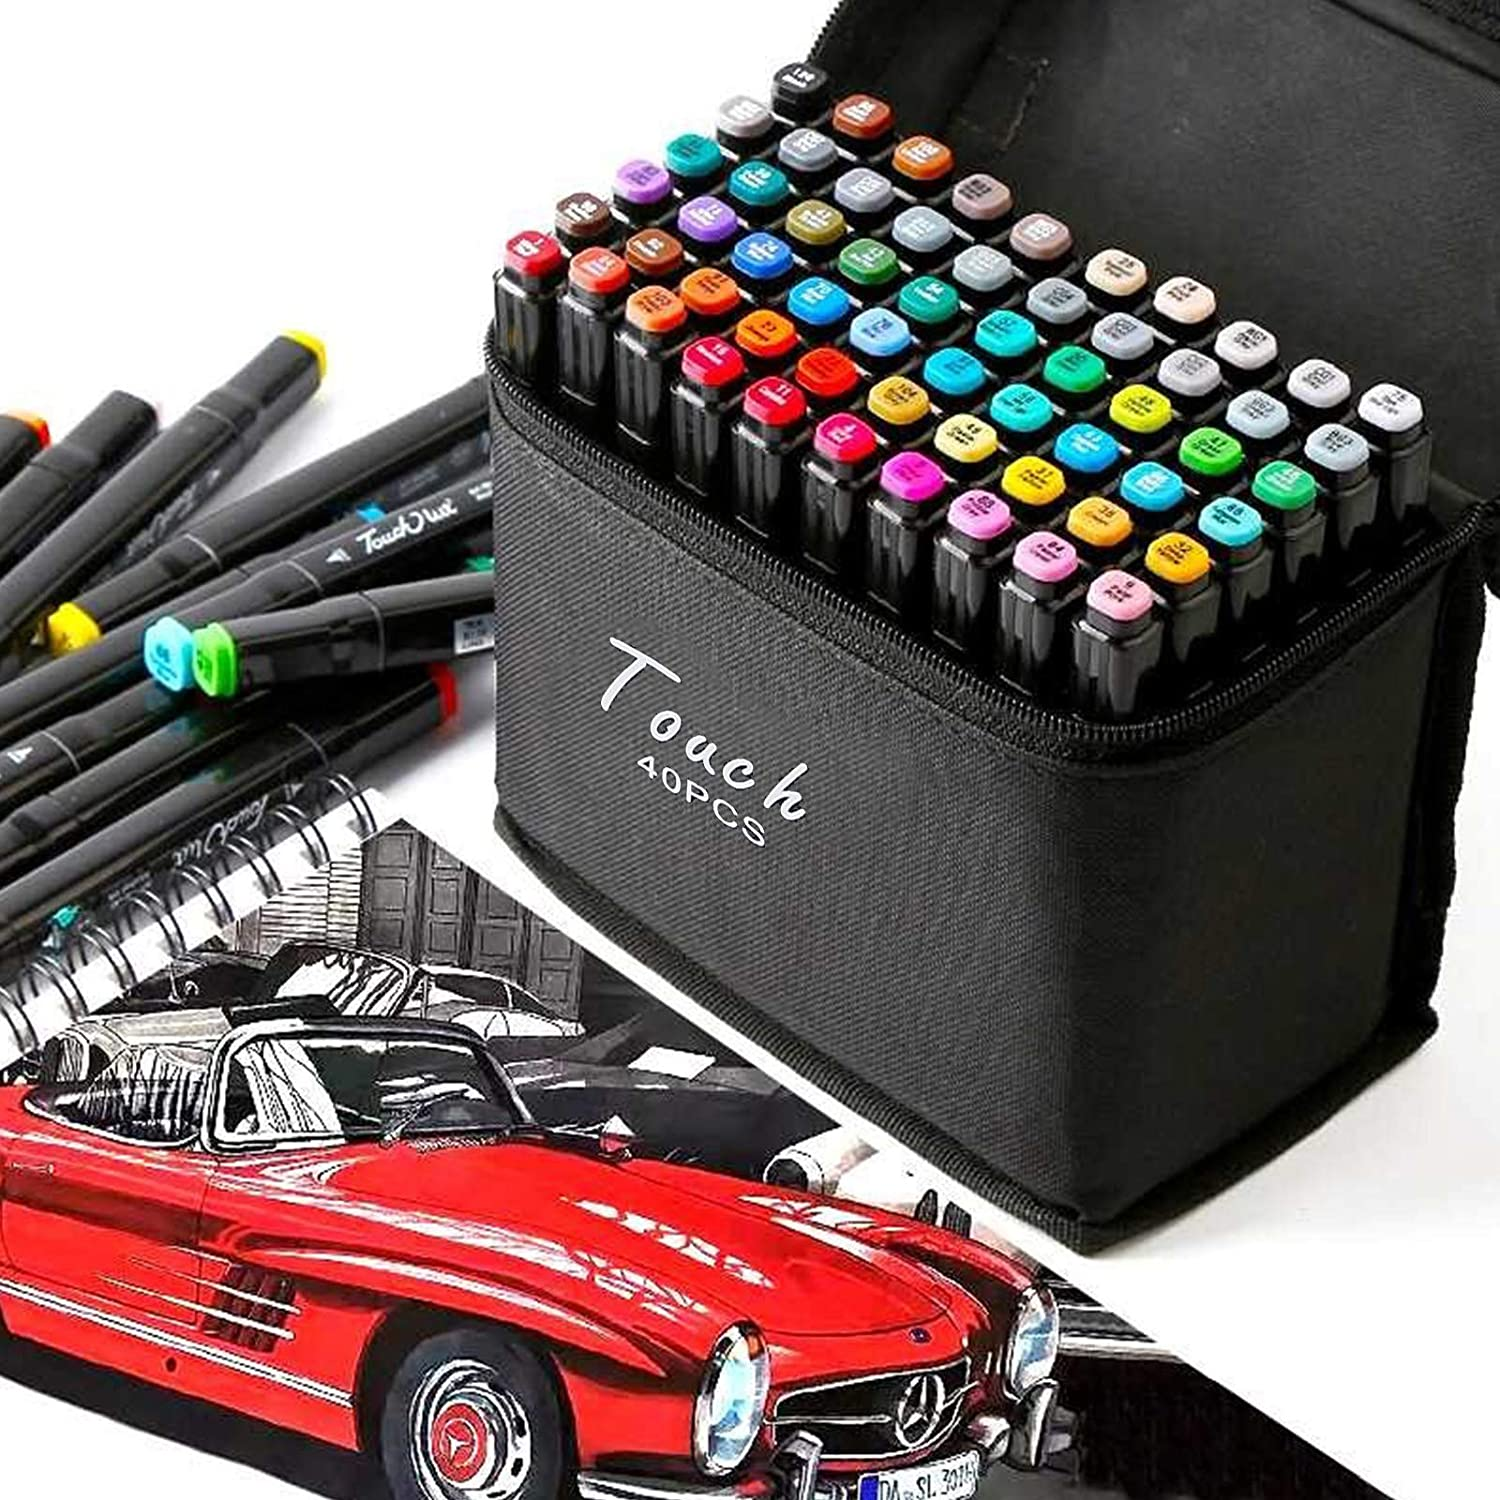 Coldshine 40 Colors Permanent Art Marker Pens Set Twin Dual Tips Touch Highlighter Pen with Carrying Case for Drawing Sketching Adult Coloring Highlighting and Underlining